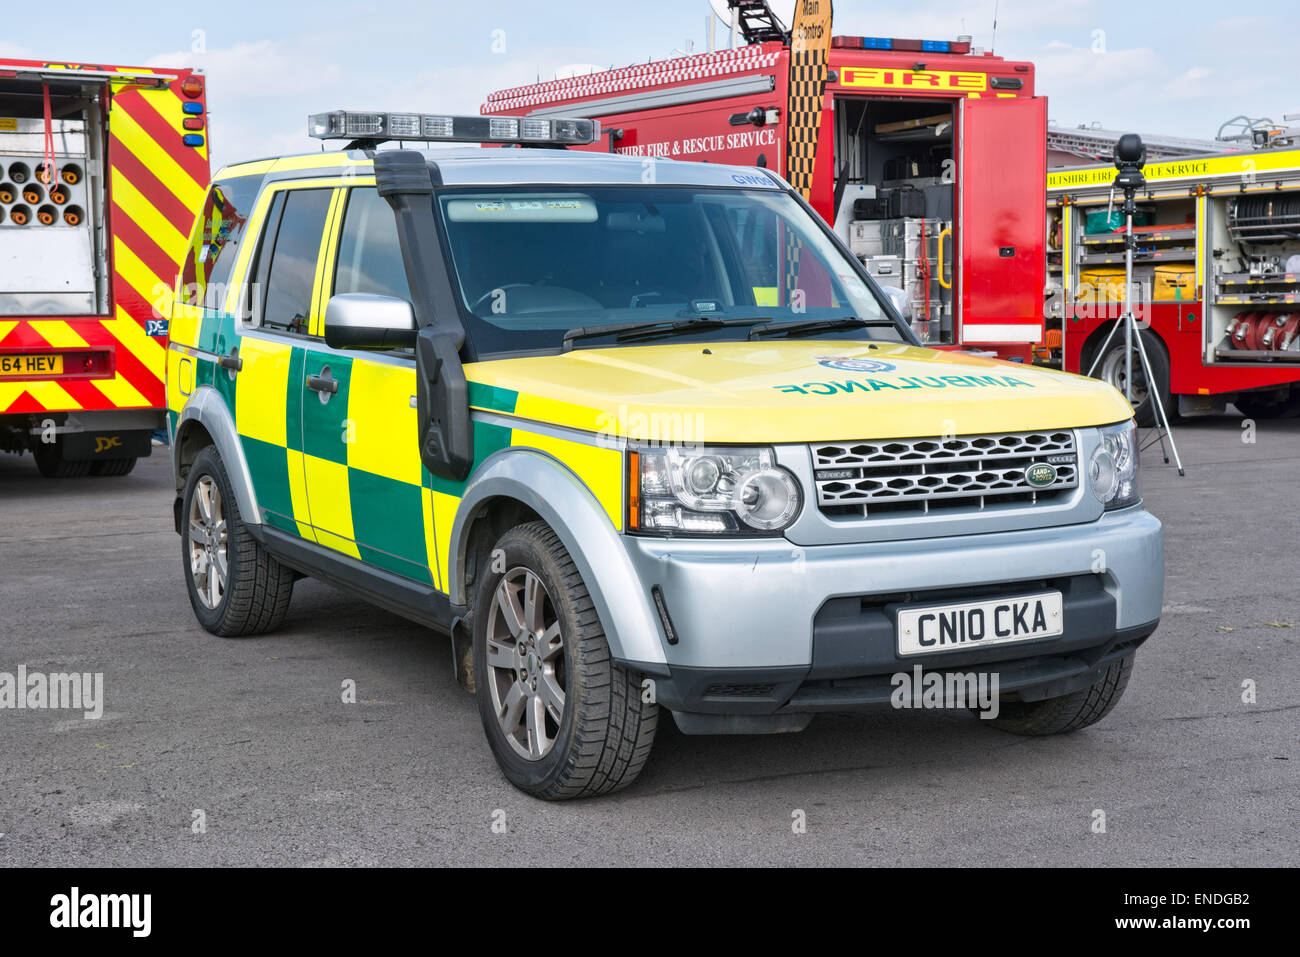 A Wiltshire NHS trust paramedic Landrover ambulance - Stock Image